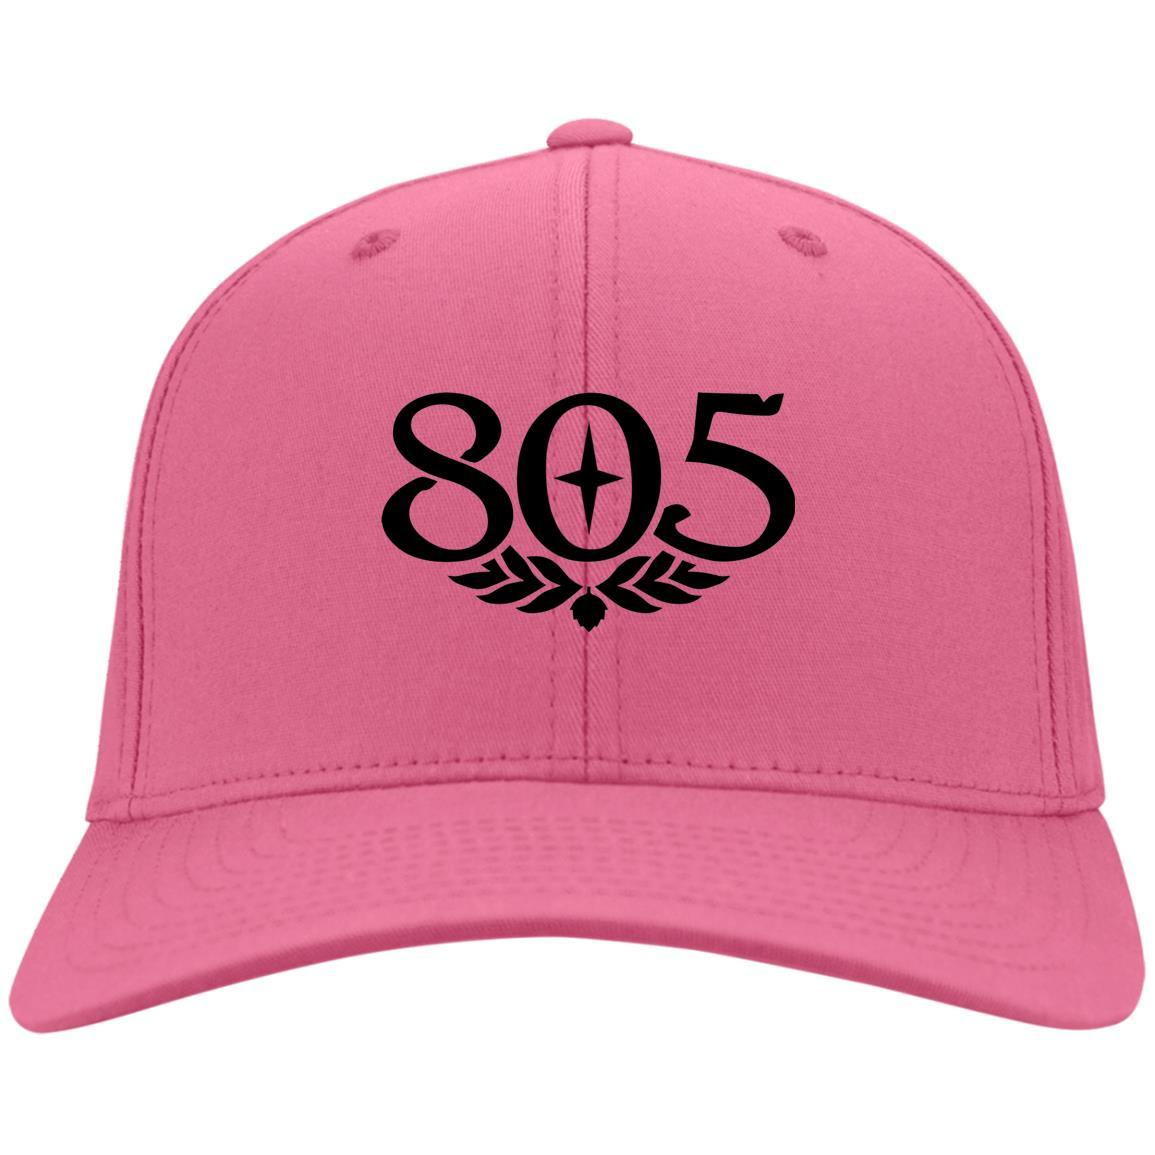 805 Beer Black - Port & Co. Twill Cap Neon Pink